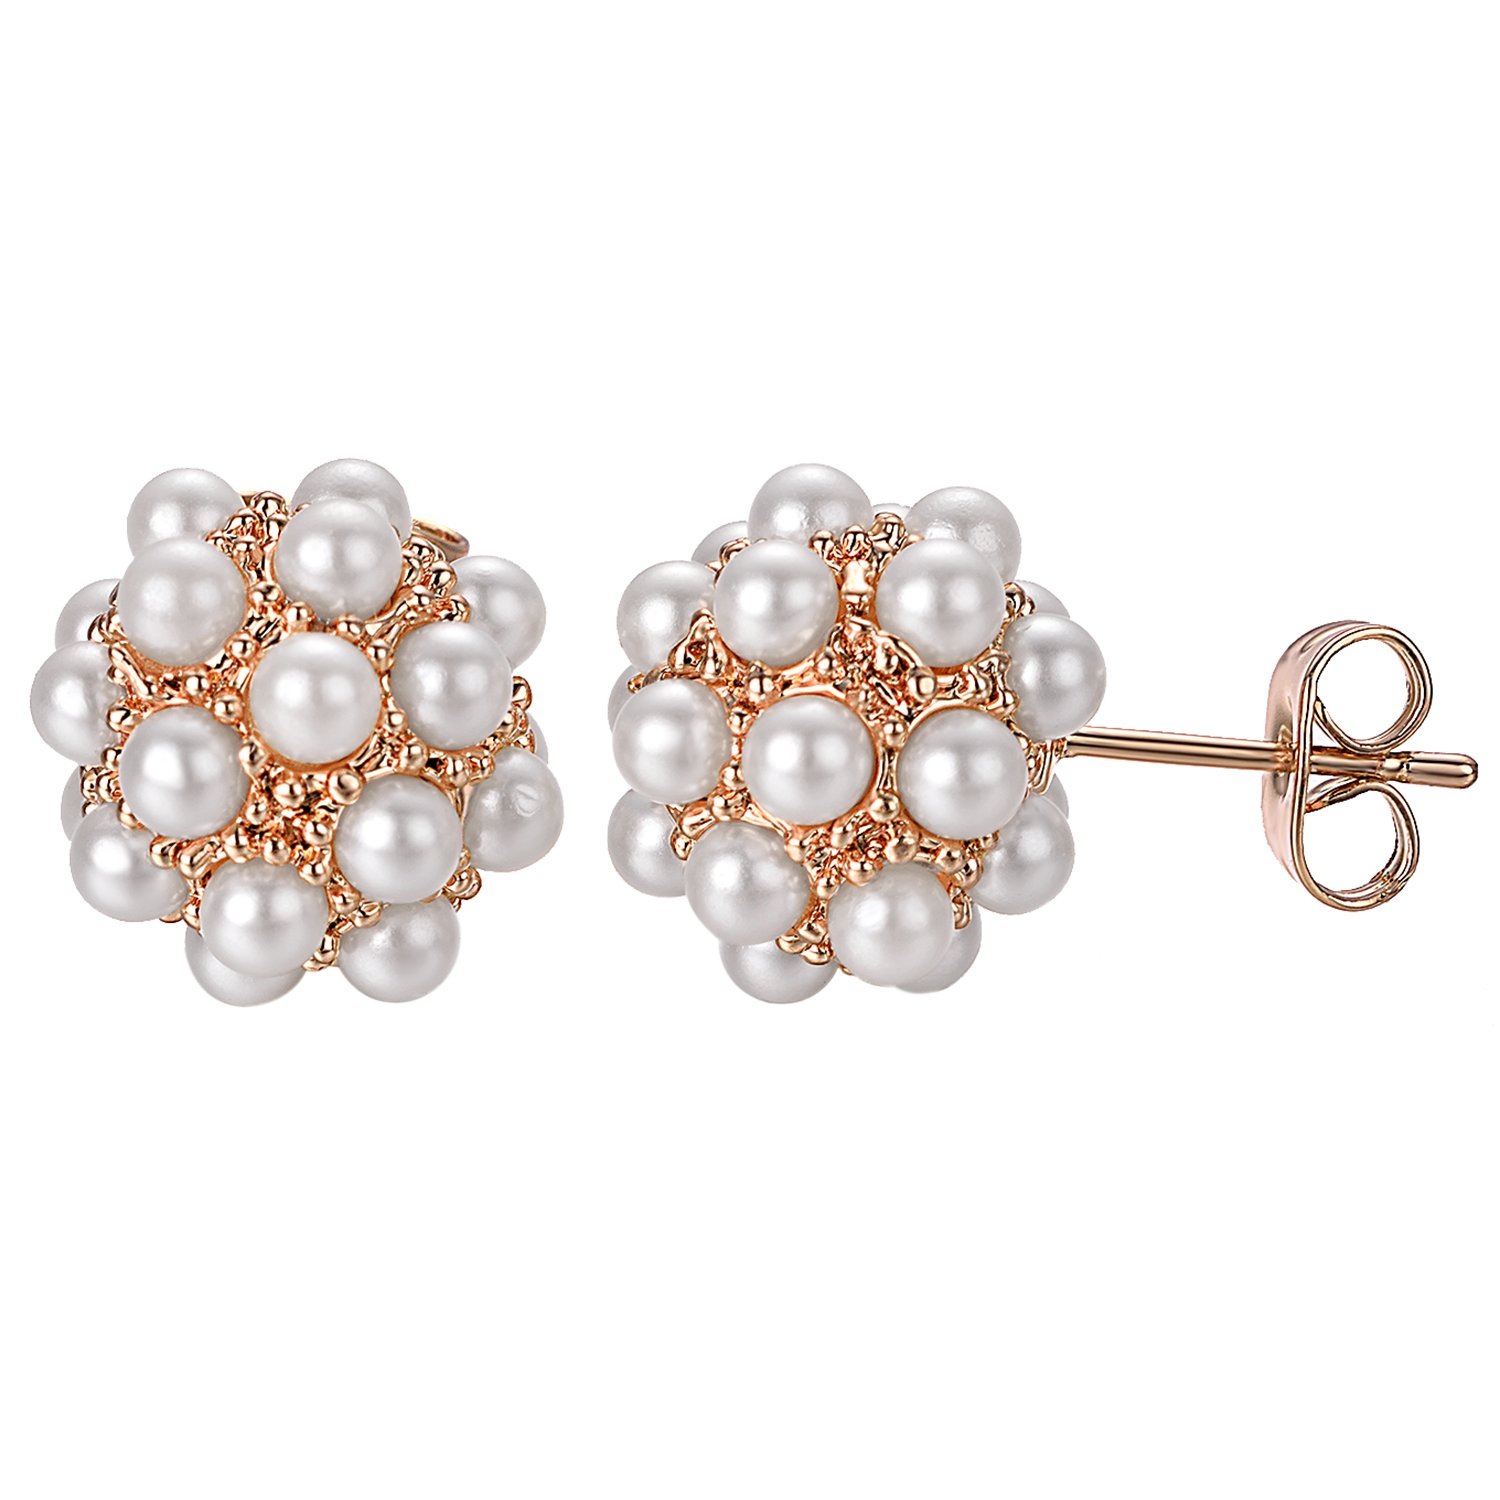 Yoursfs Simulated Pearl Earrings for Women Round Cluster Pearls Stud/Clip on Earrings Italina